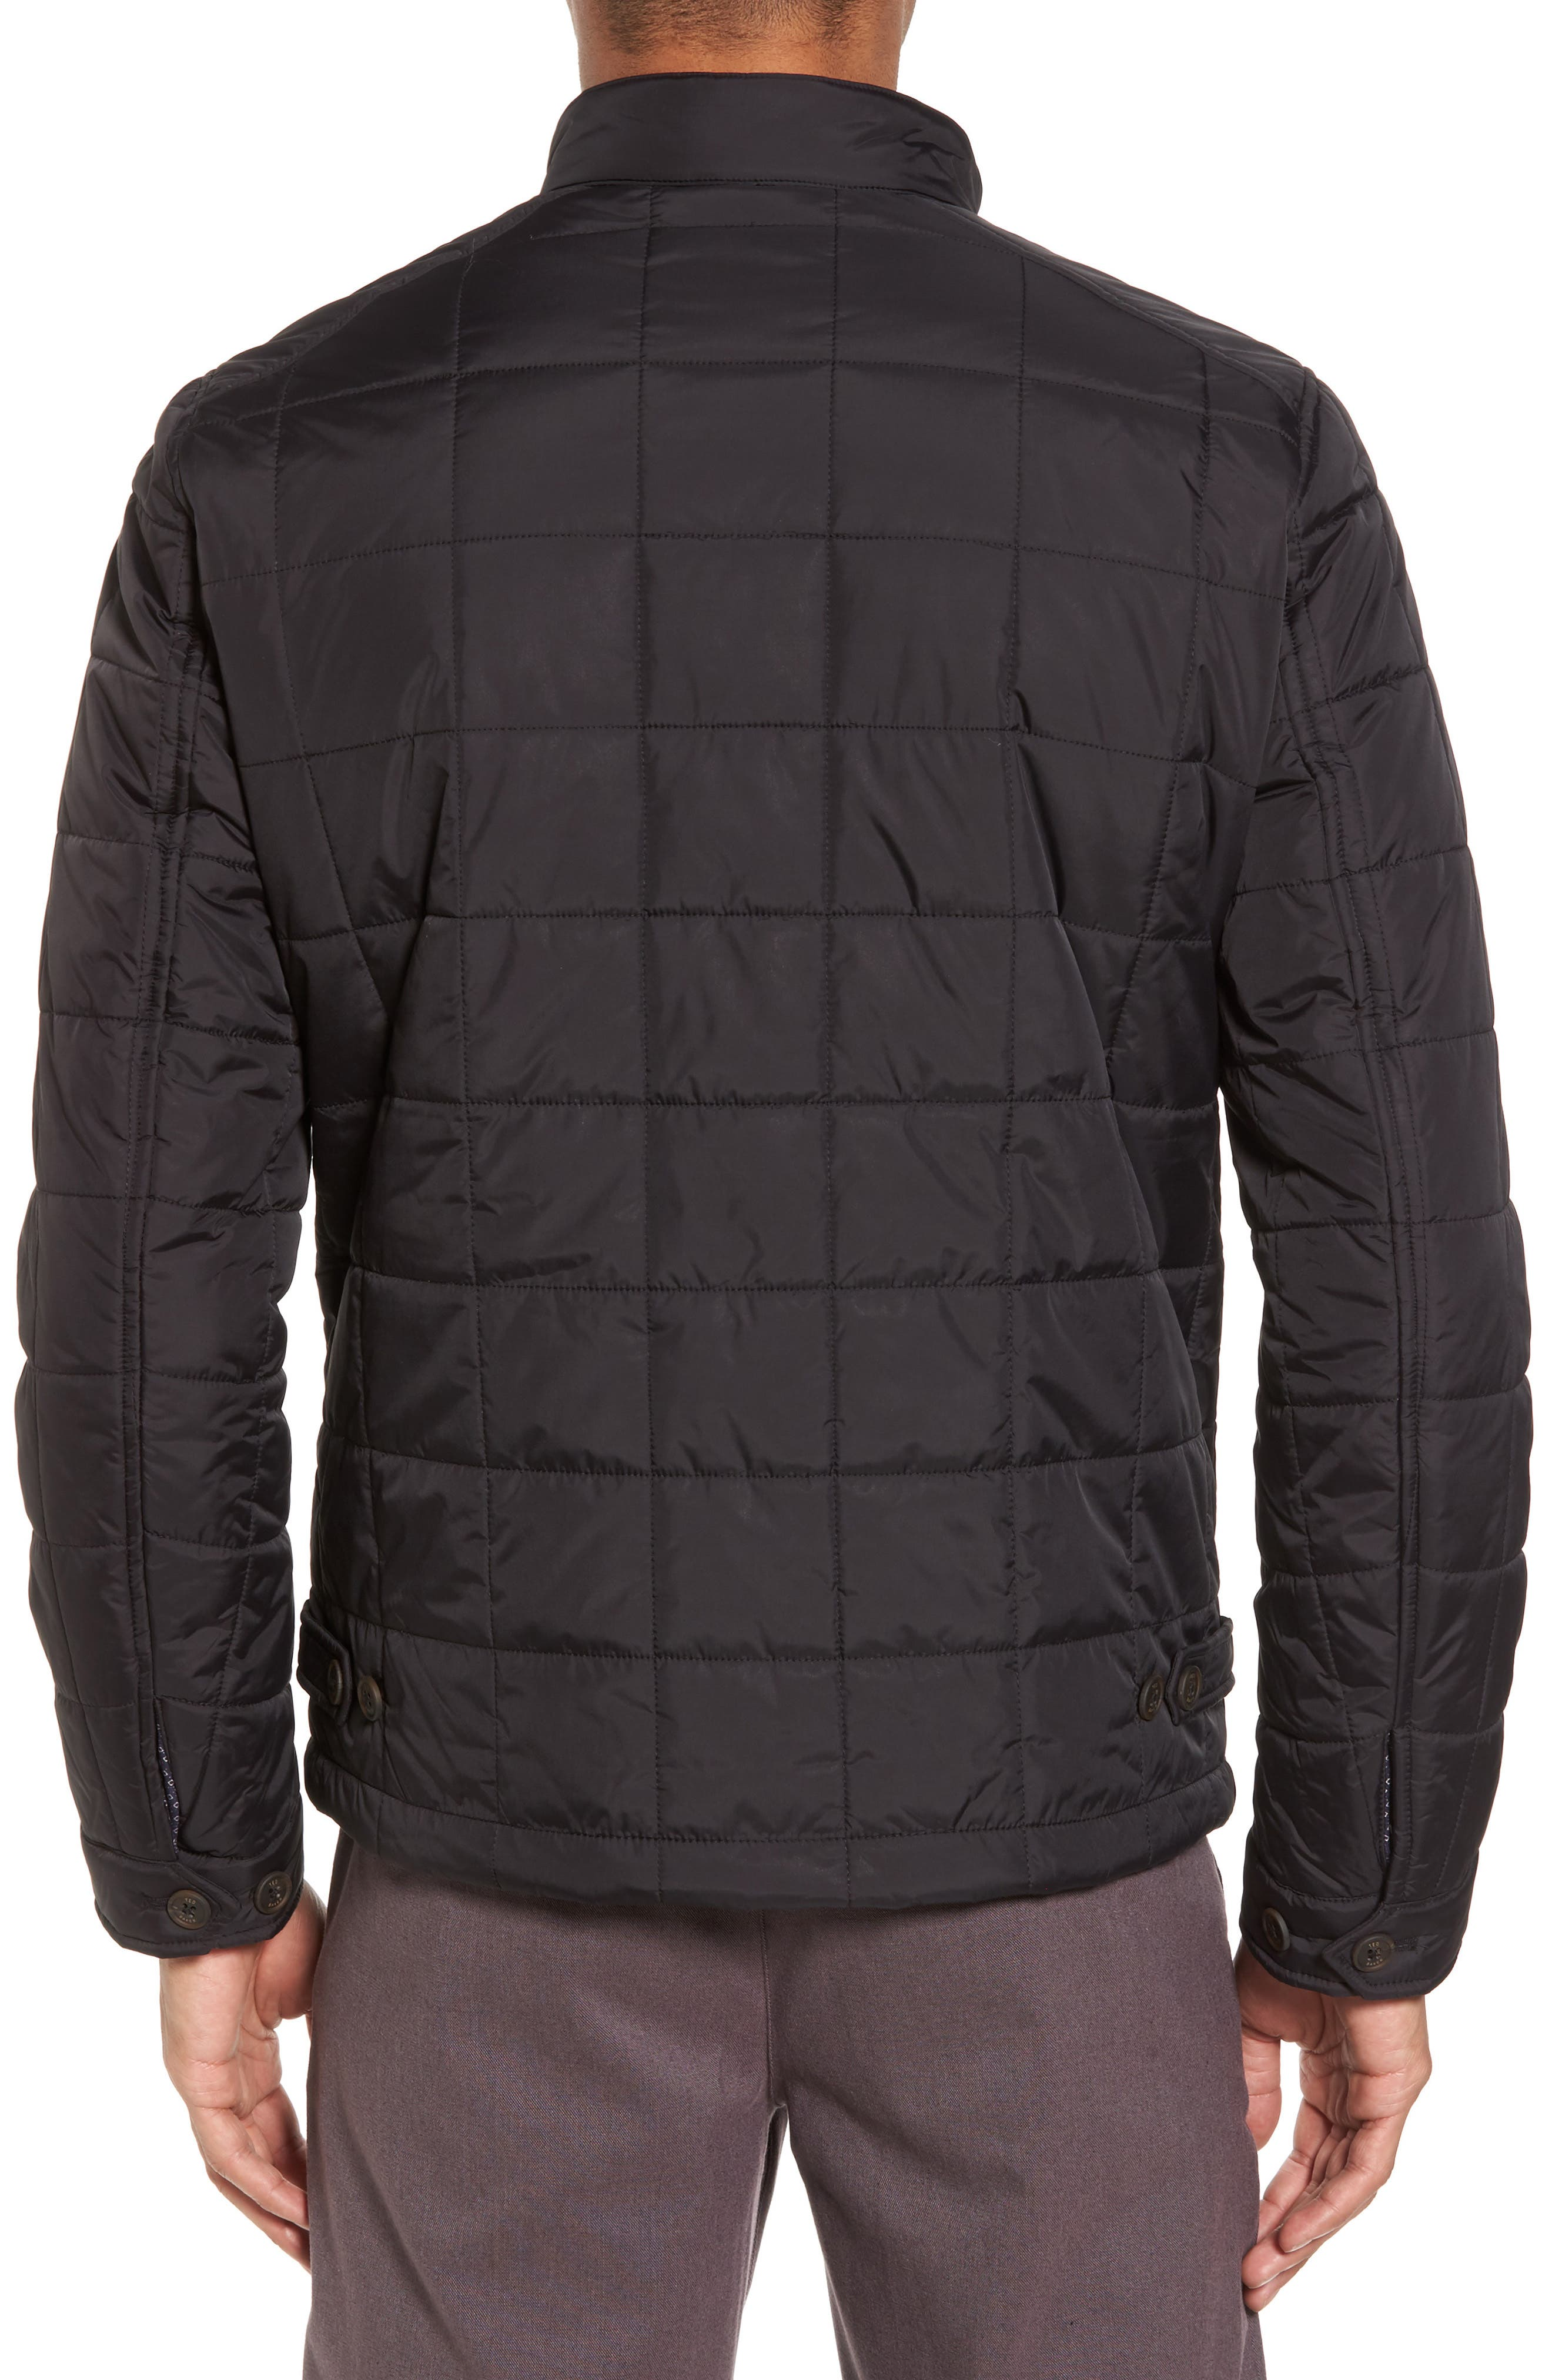 Alees Trim Fit Quilted Jacket,                             Alternate thumbnail 2, color,                             001